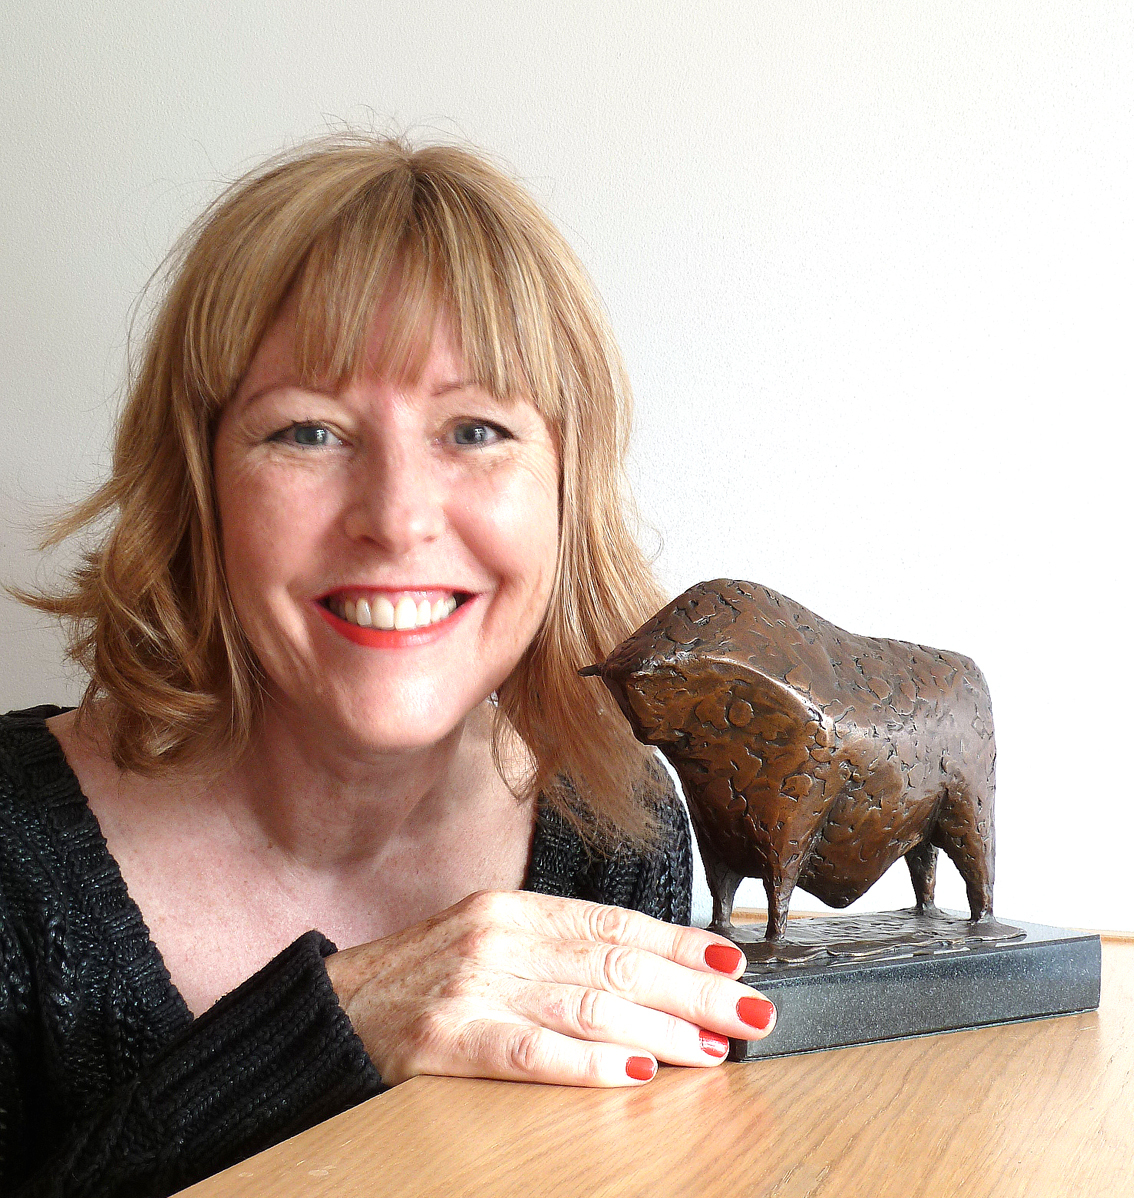 LEGEND: Malvern sculptor Caro Sweet and her aw